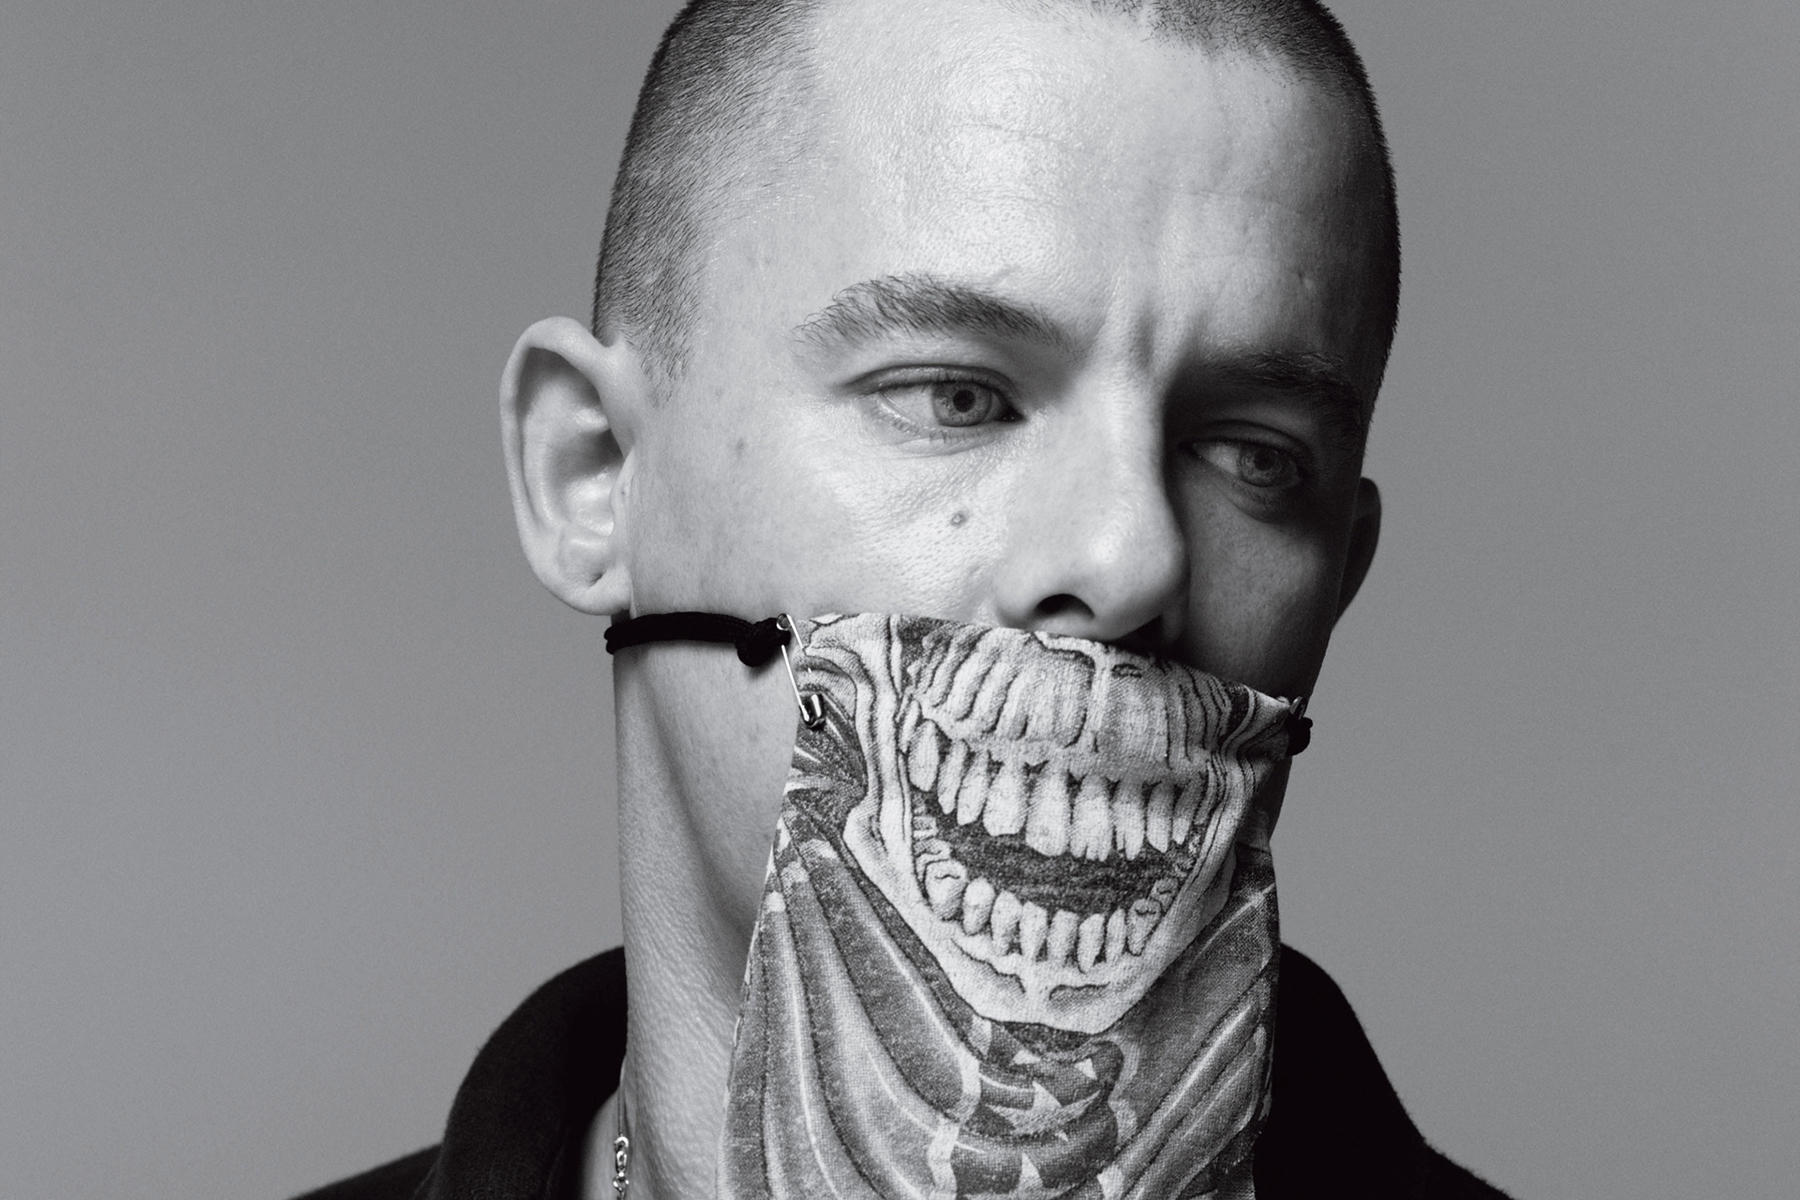 Alexander Mcqueen Trivia 35 Interesting Facts About The Fashion Designer Useless Daily Facts Trivia News Oddities Jokes And More